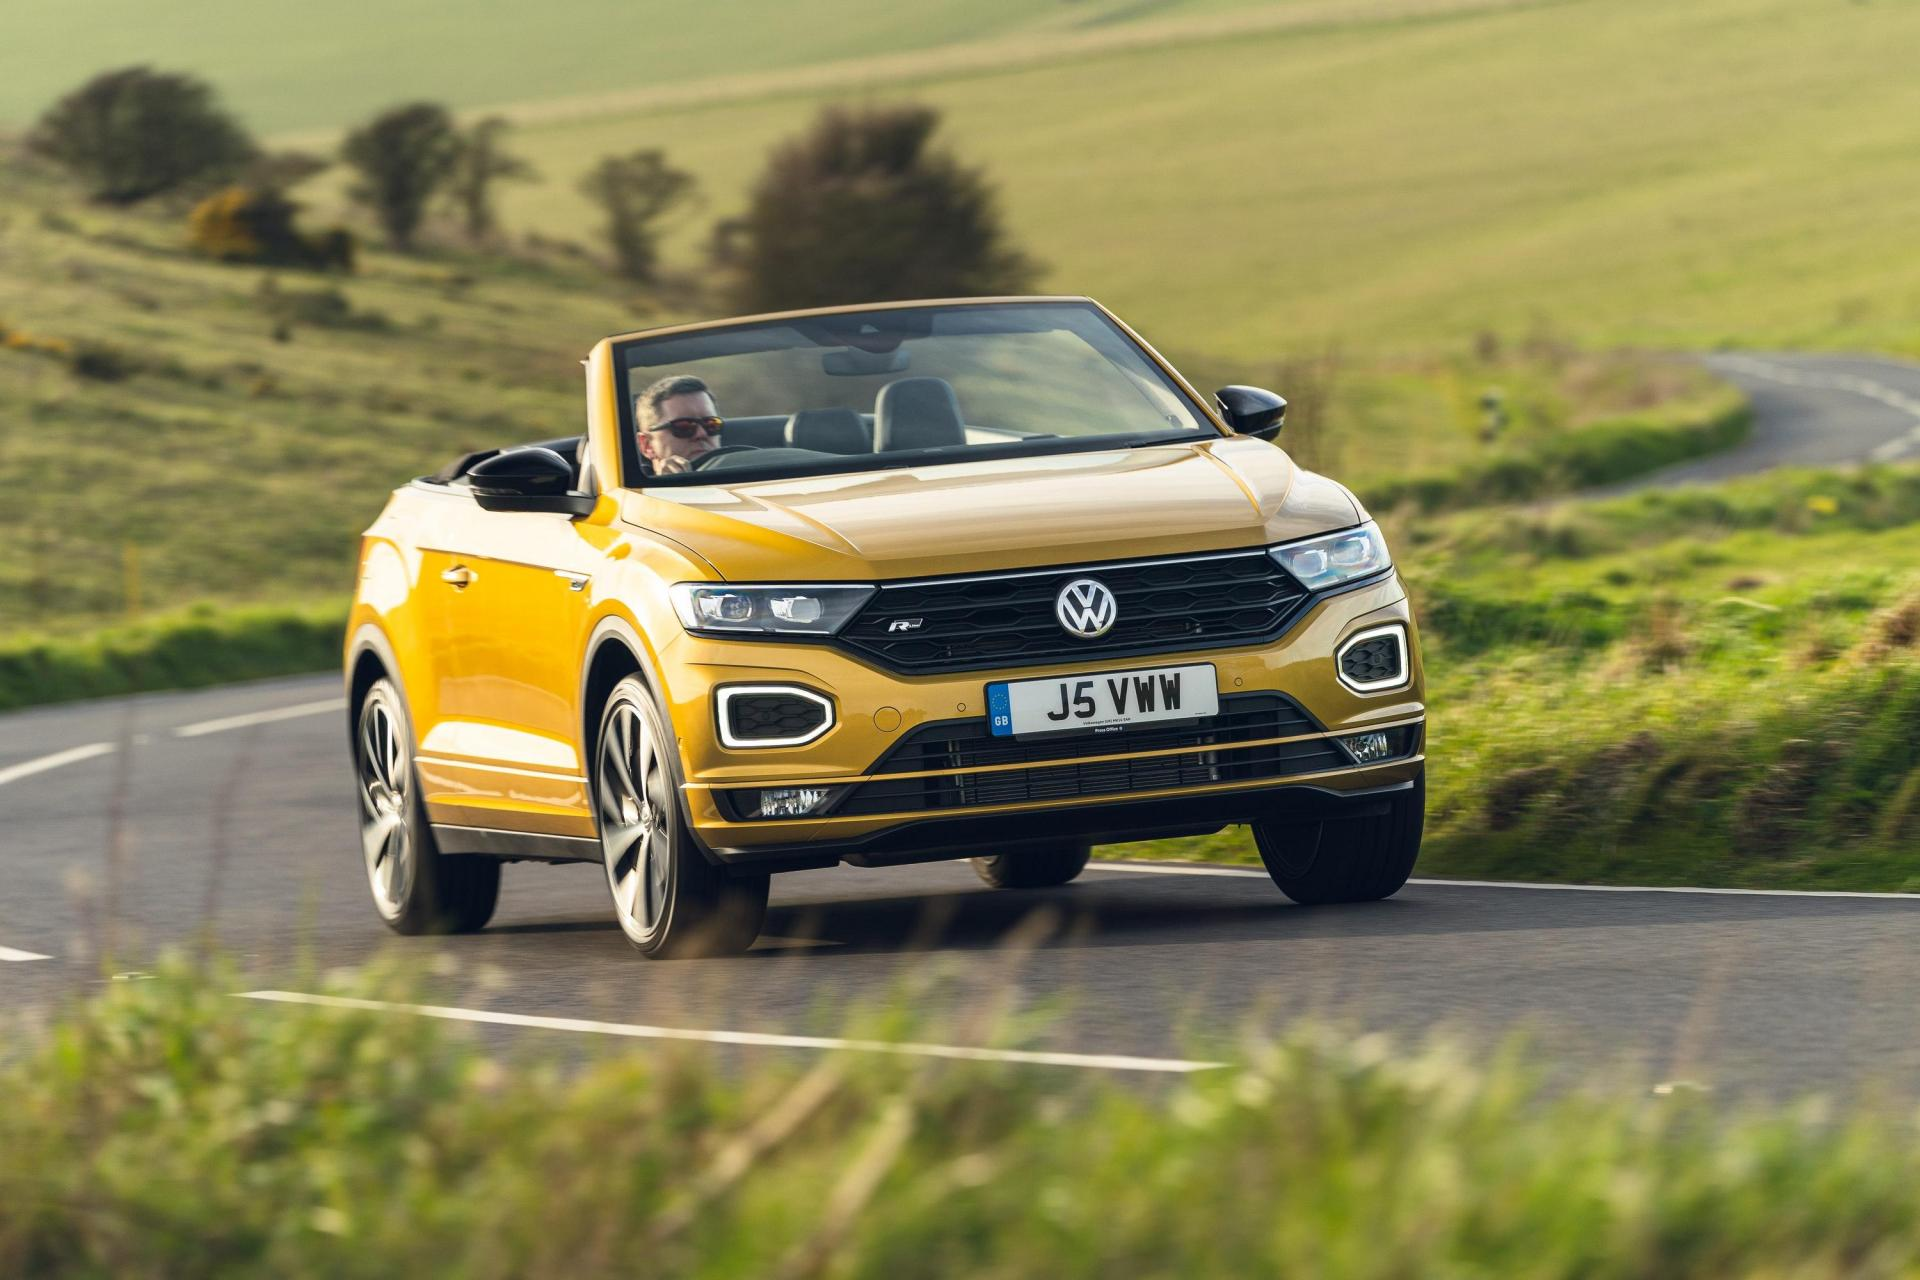 There's a little bit of bodyroll when cornering the T-Roc Cabriolet.